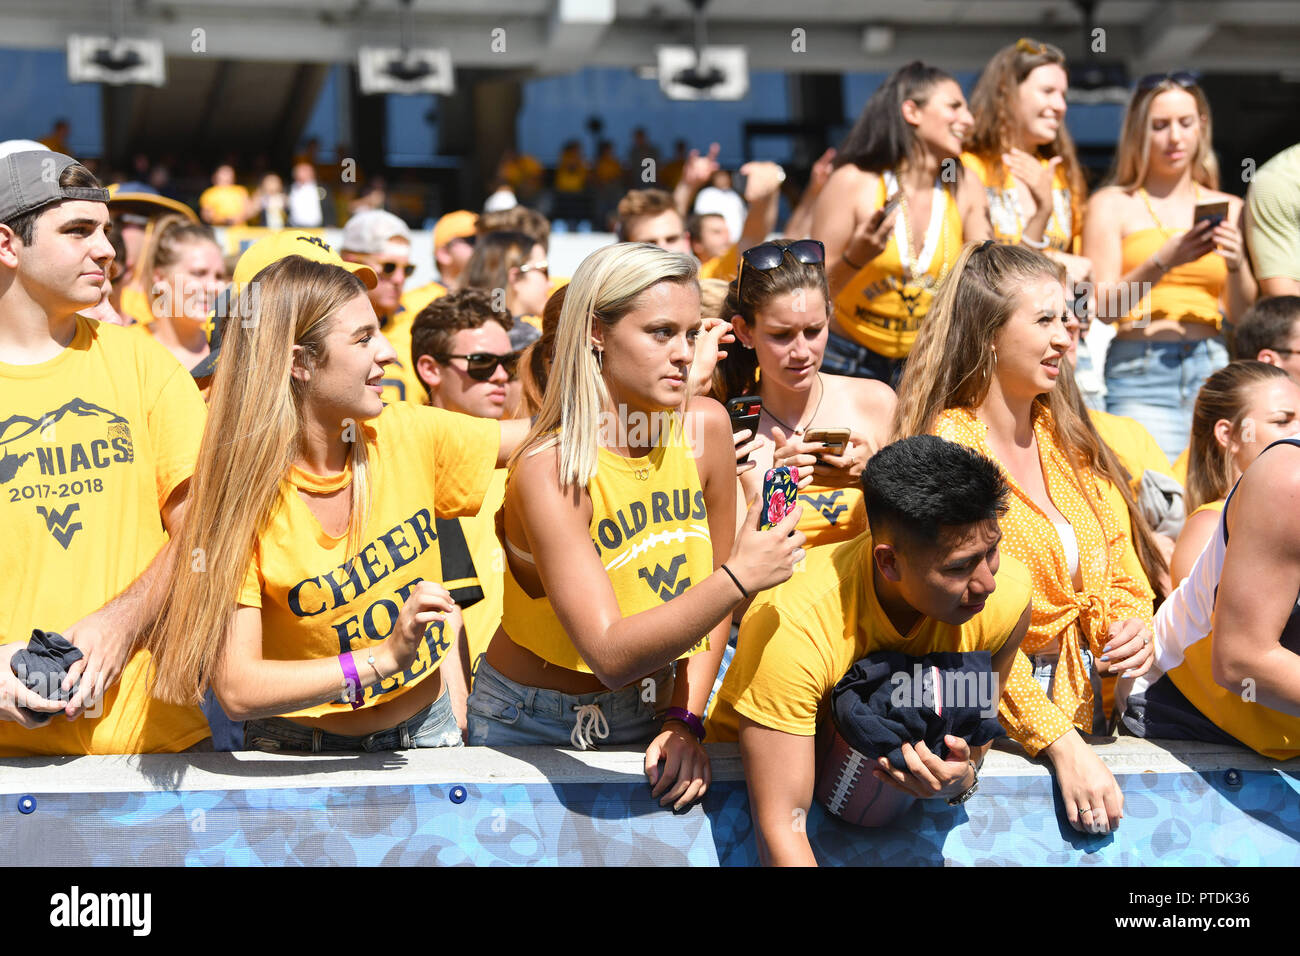 Morgantown West Virginia Usa 6th Oct 2018 Fans In The